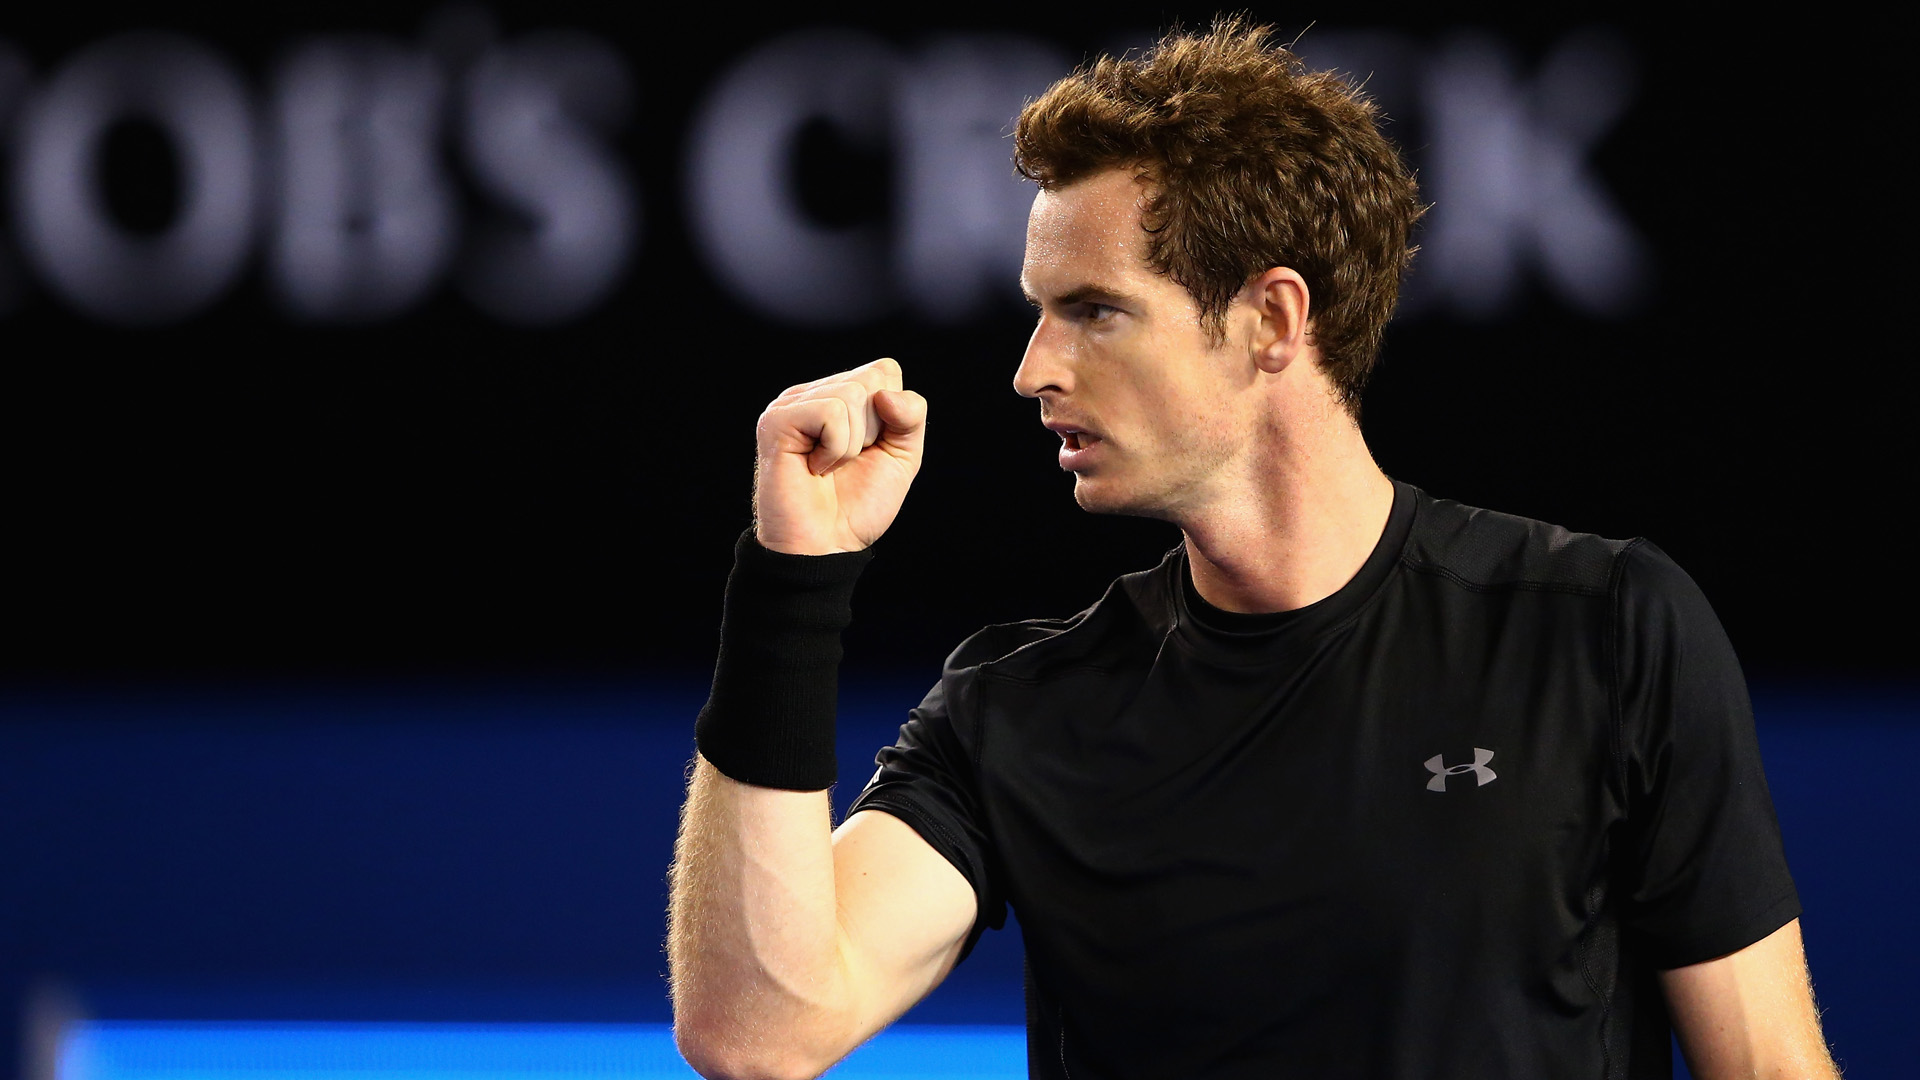 MELBOURNE, AUSTRALIA - JANUARY 25:  Andy Murray of Great Britain celebrates winning the third set in his fourth round match against Grigor Dimitrov of Bulgaria during day seven of the 2015 Australian Open at Melbourne Park on January 25, 2015 in Melbourne, Australia.  (Photo by Clive Brunskill/Getty Images)